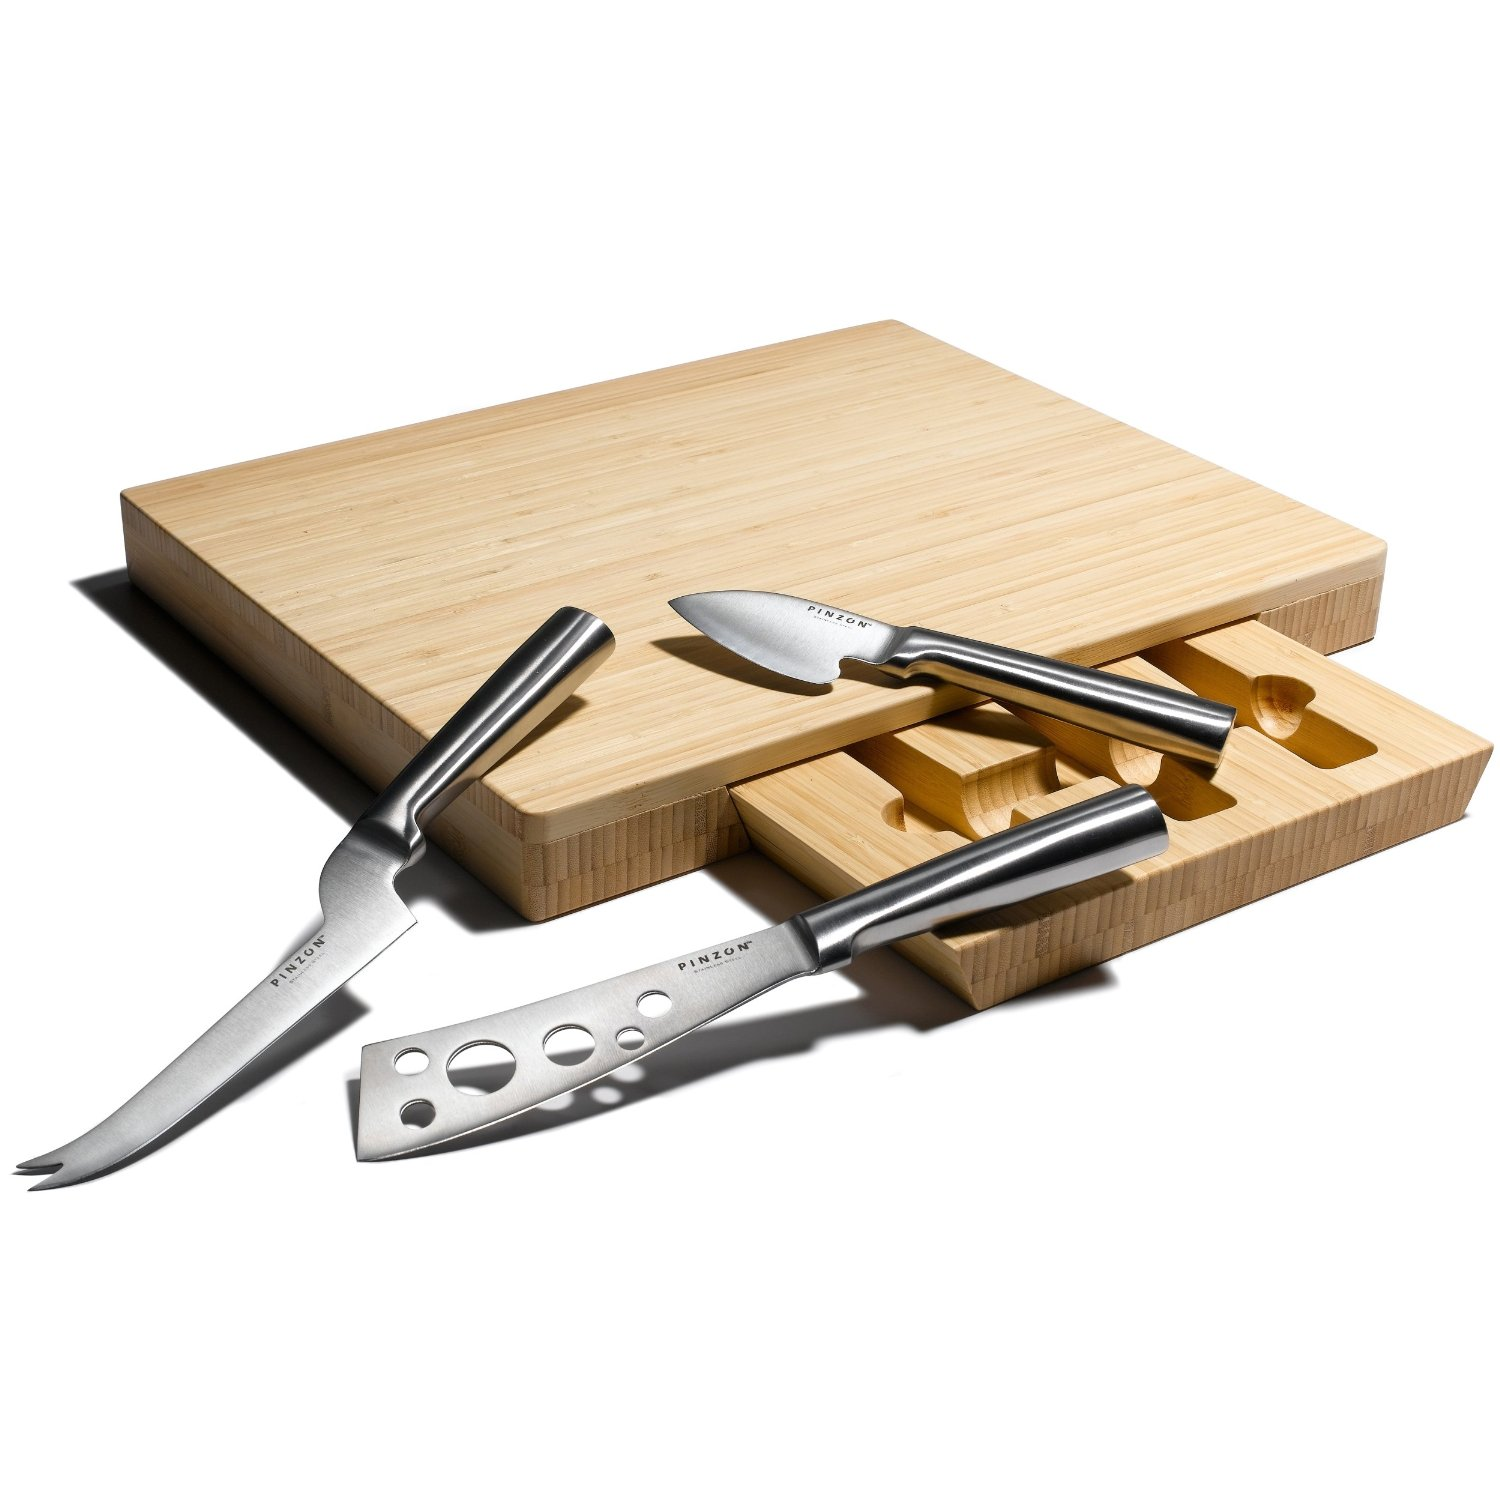 unique kitchen knife set creative knives and unusual unusual kitchen knife block designs